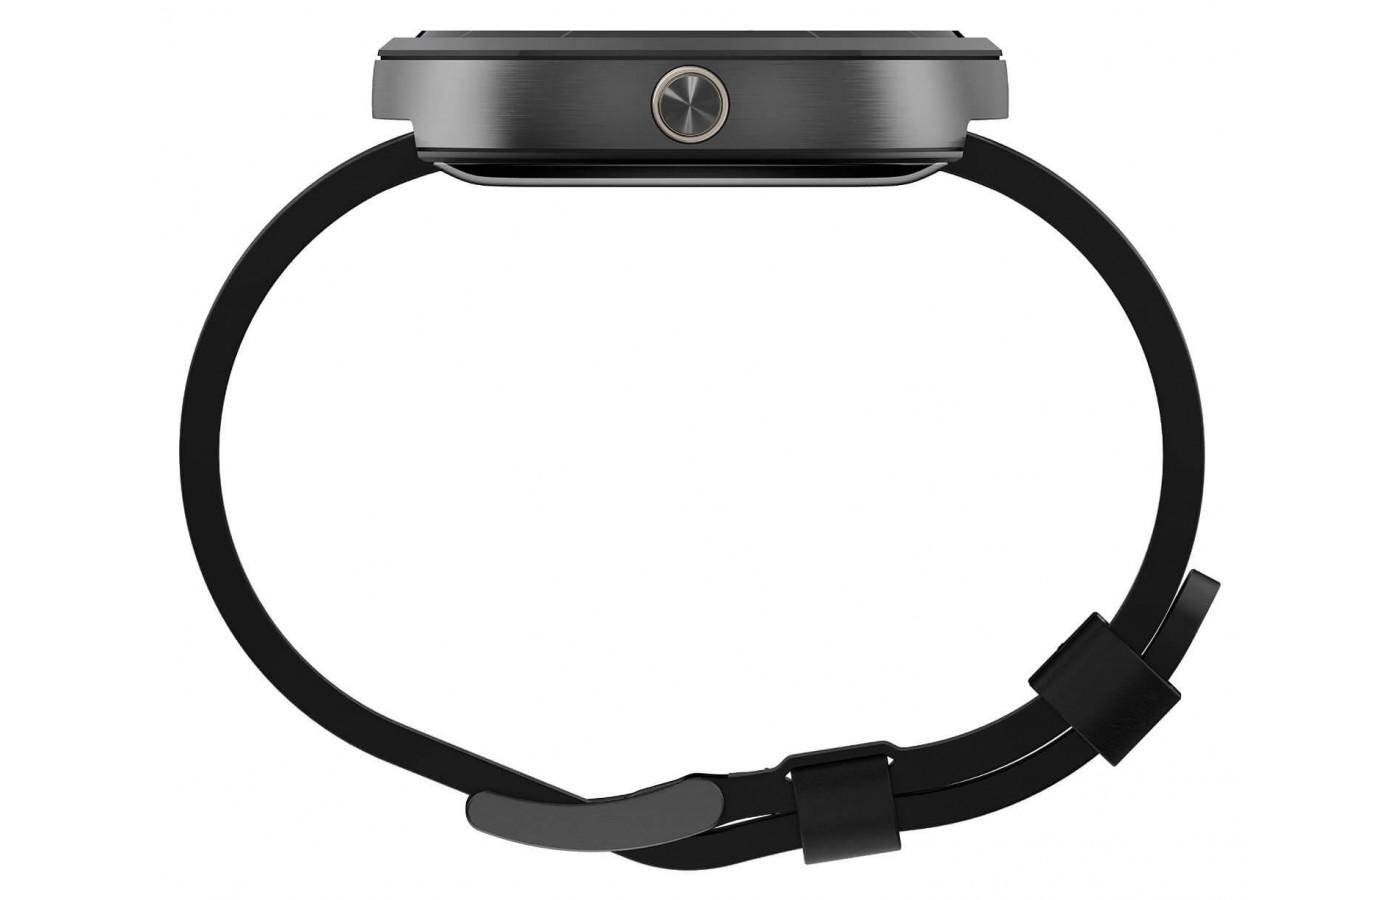 Motorola Moto 360 (1st gen.) is worn comfortably around the wrist